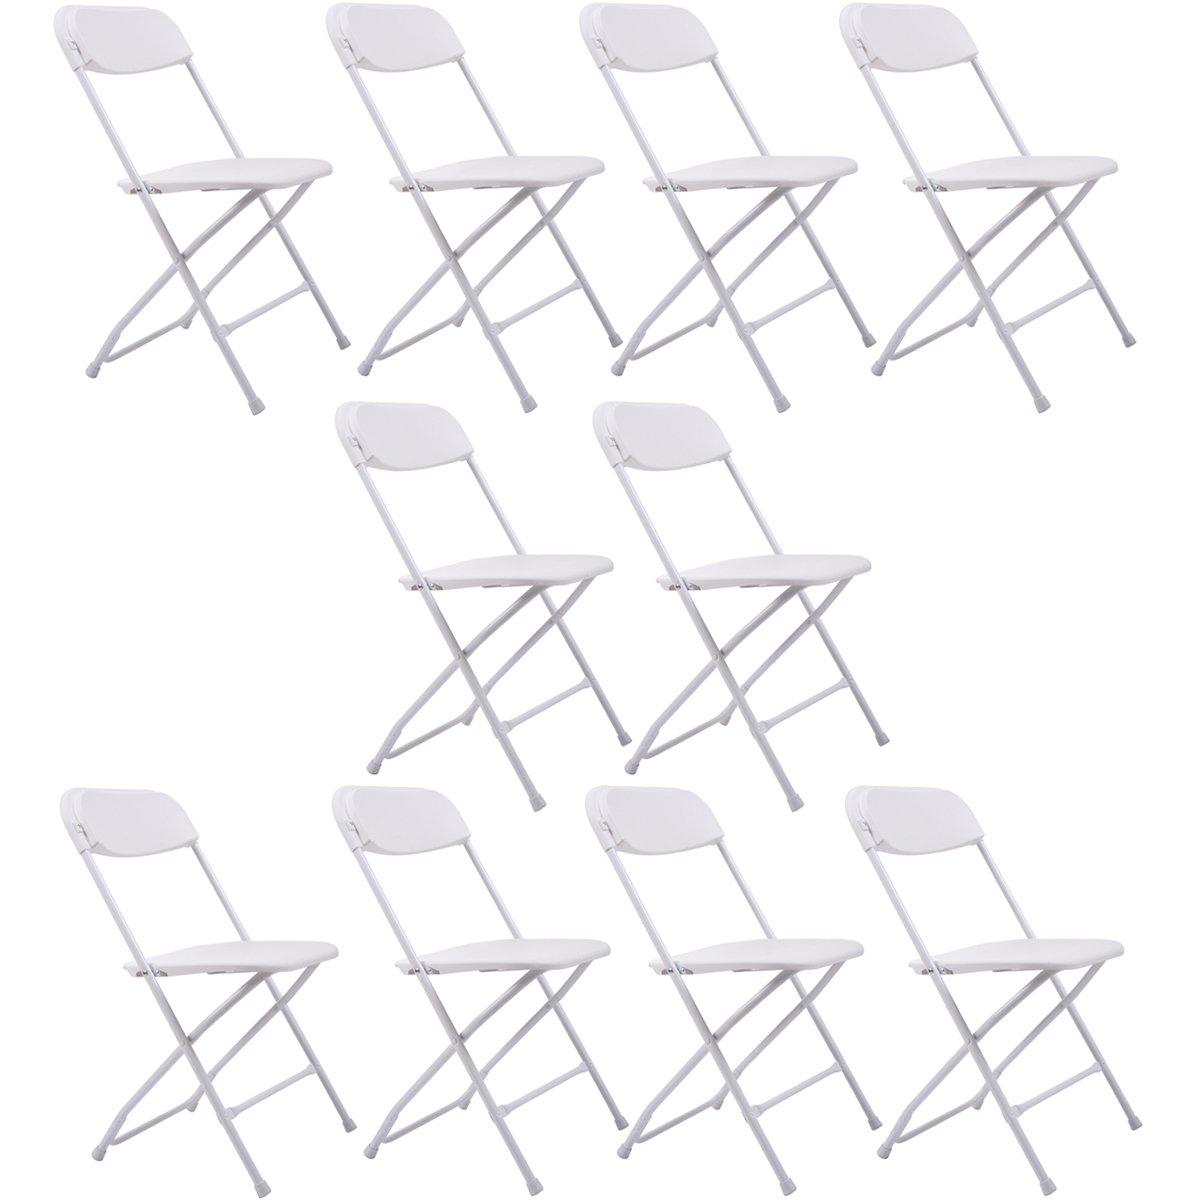 LAZYMOON 10 PCs White Plastic Folding Chairs Commercial Quality Stackable Outdoor Event Wedding Party Chairs